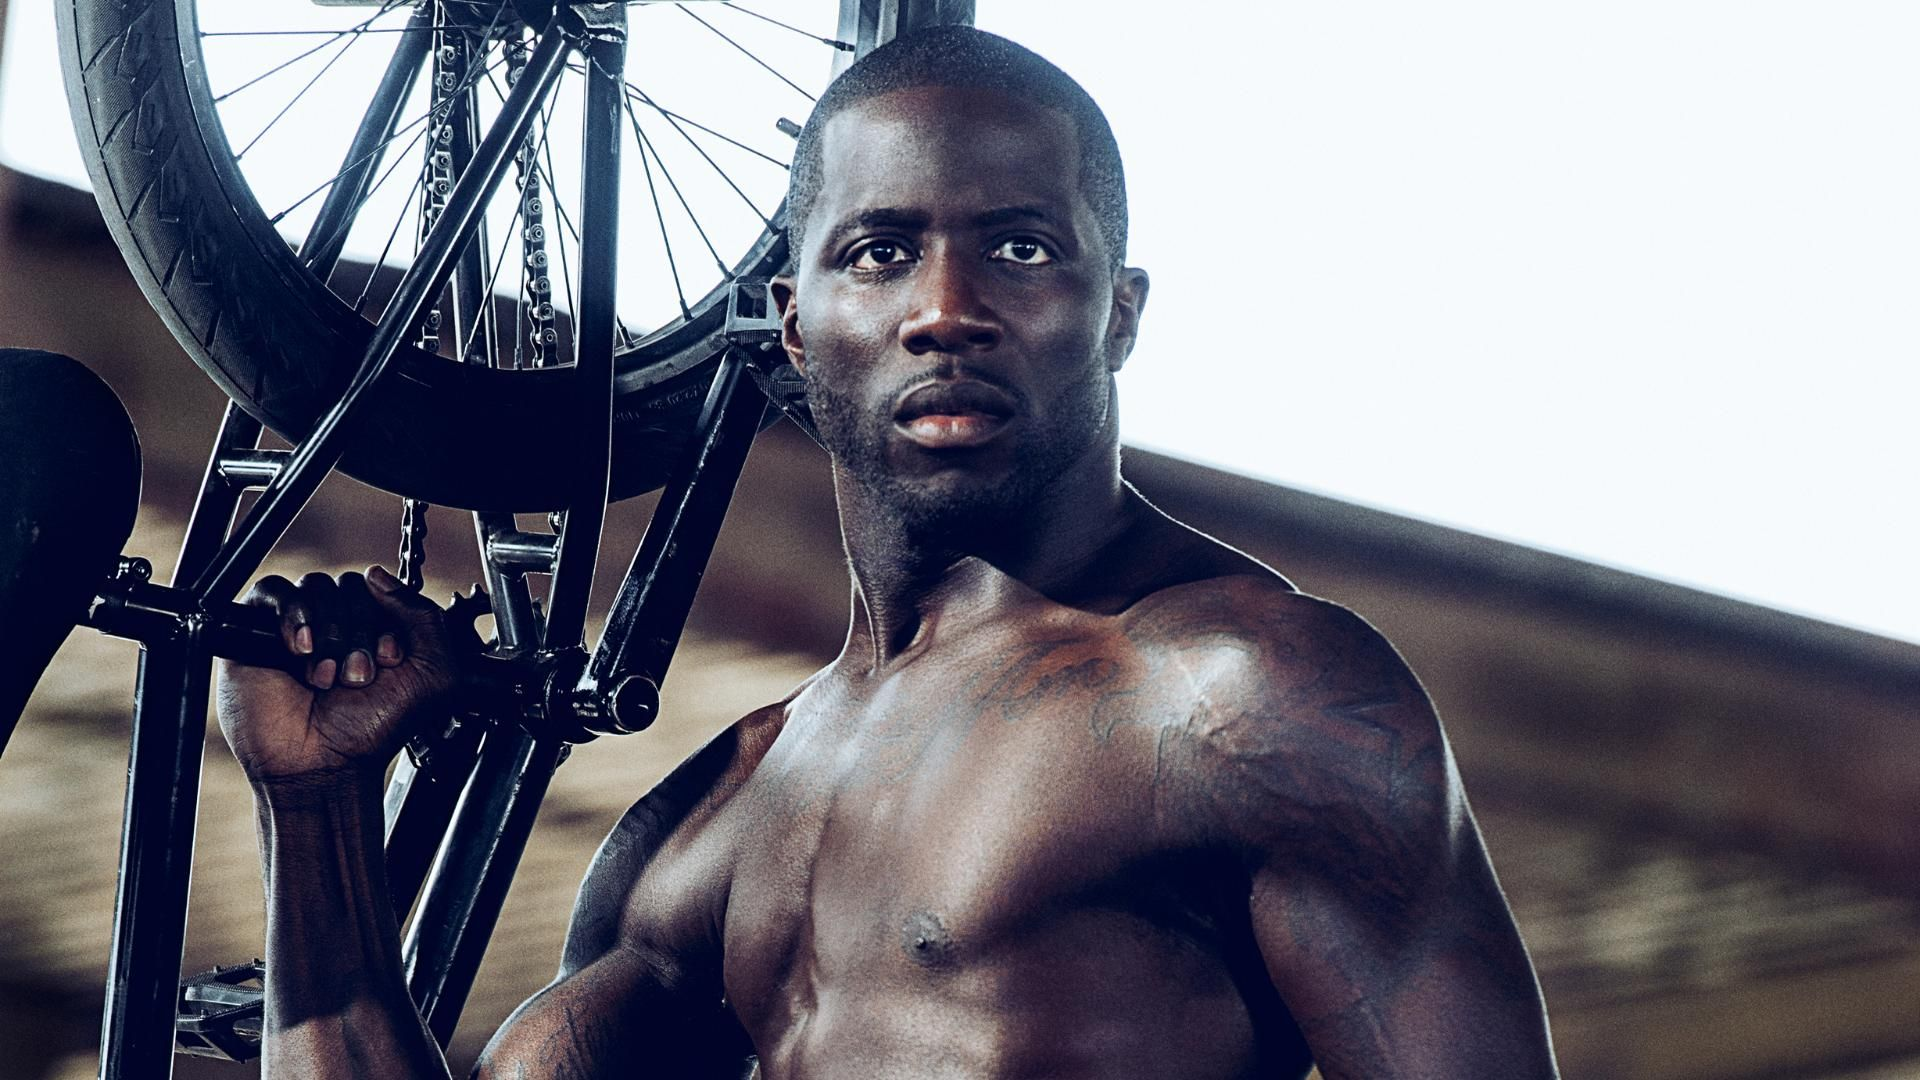 ESPN The Magazine 2014 Body Issue: Nigel Sylvester